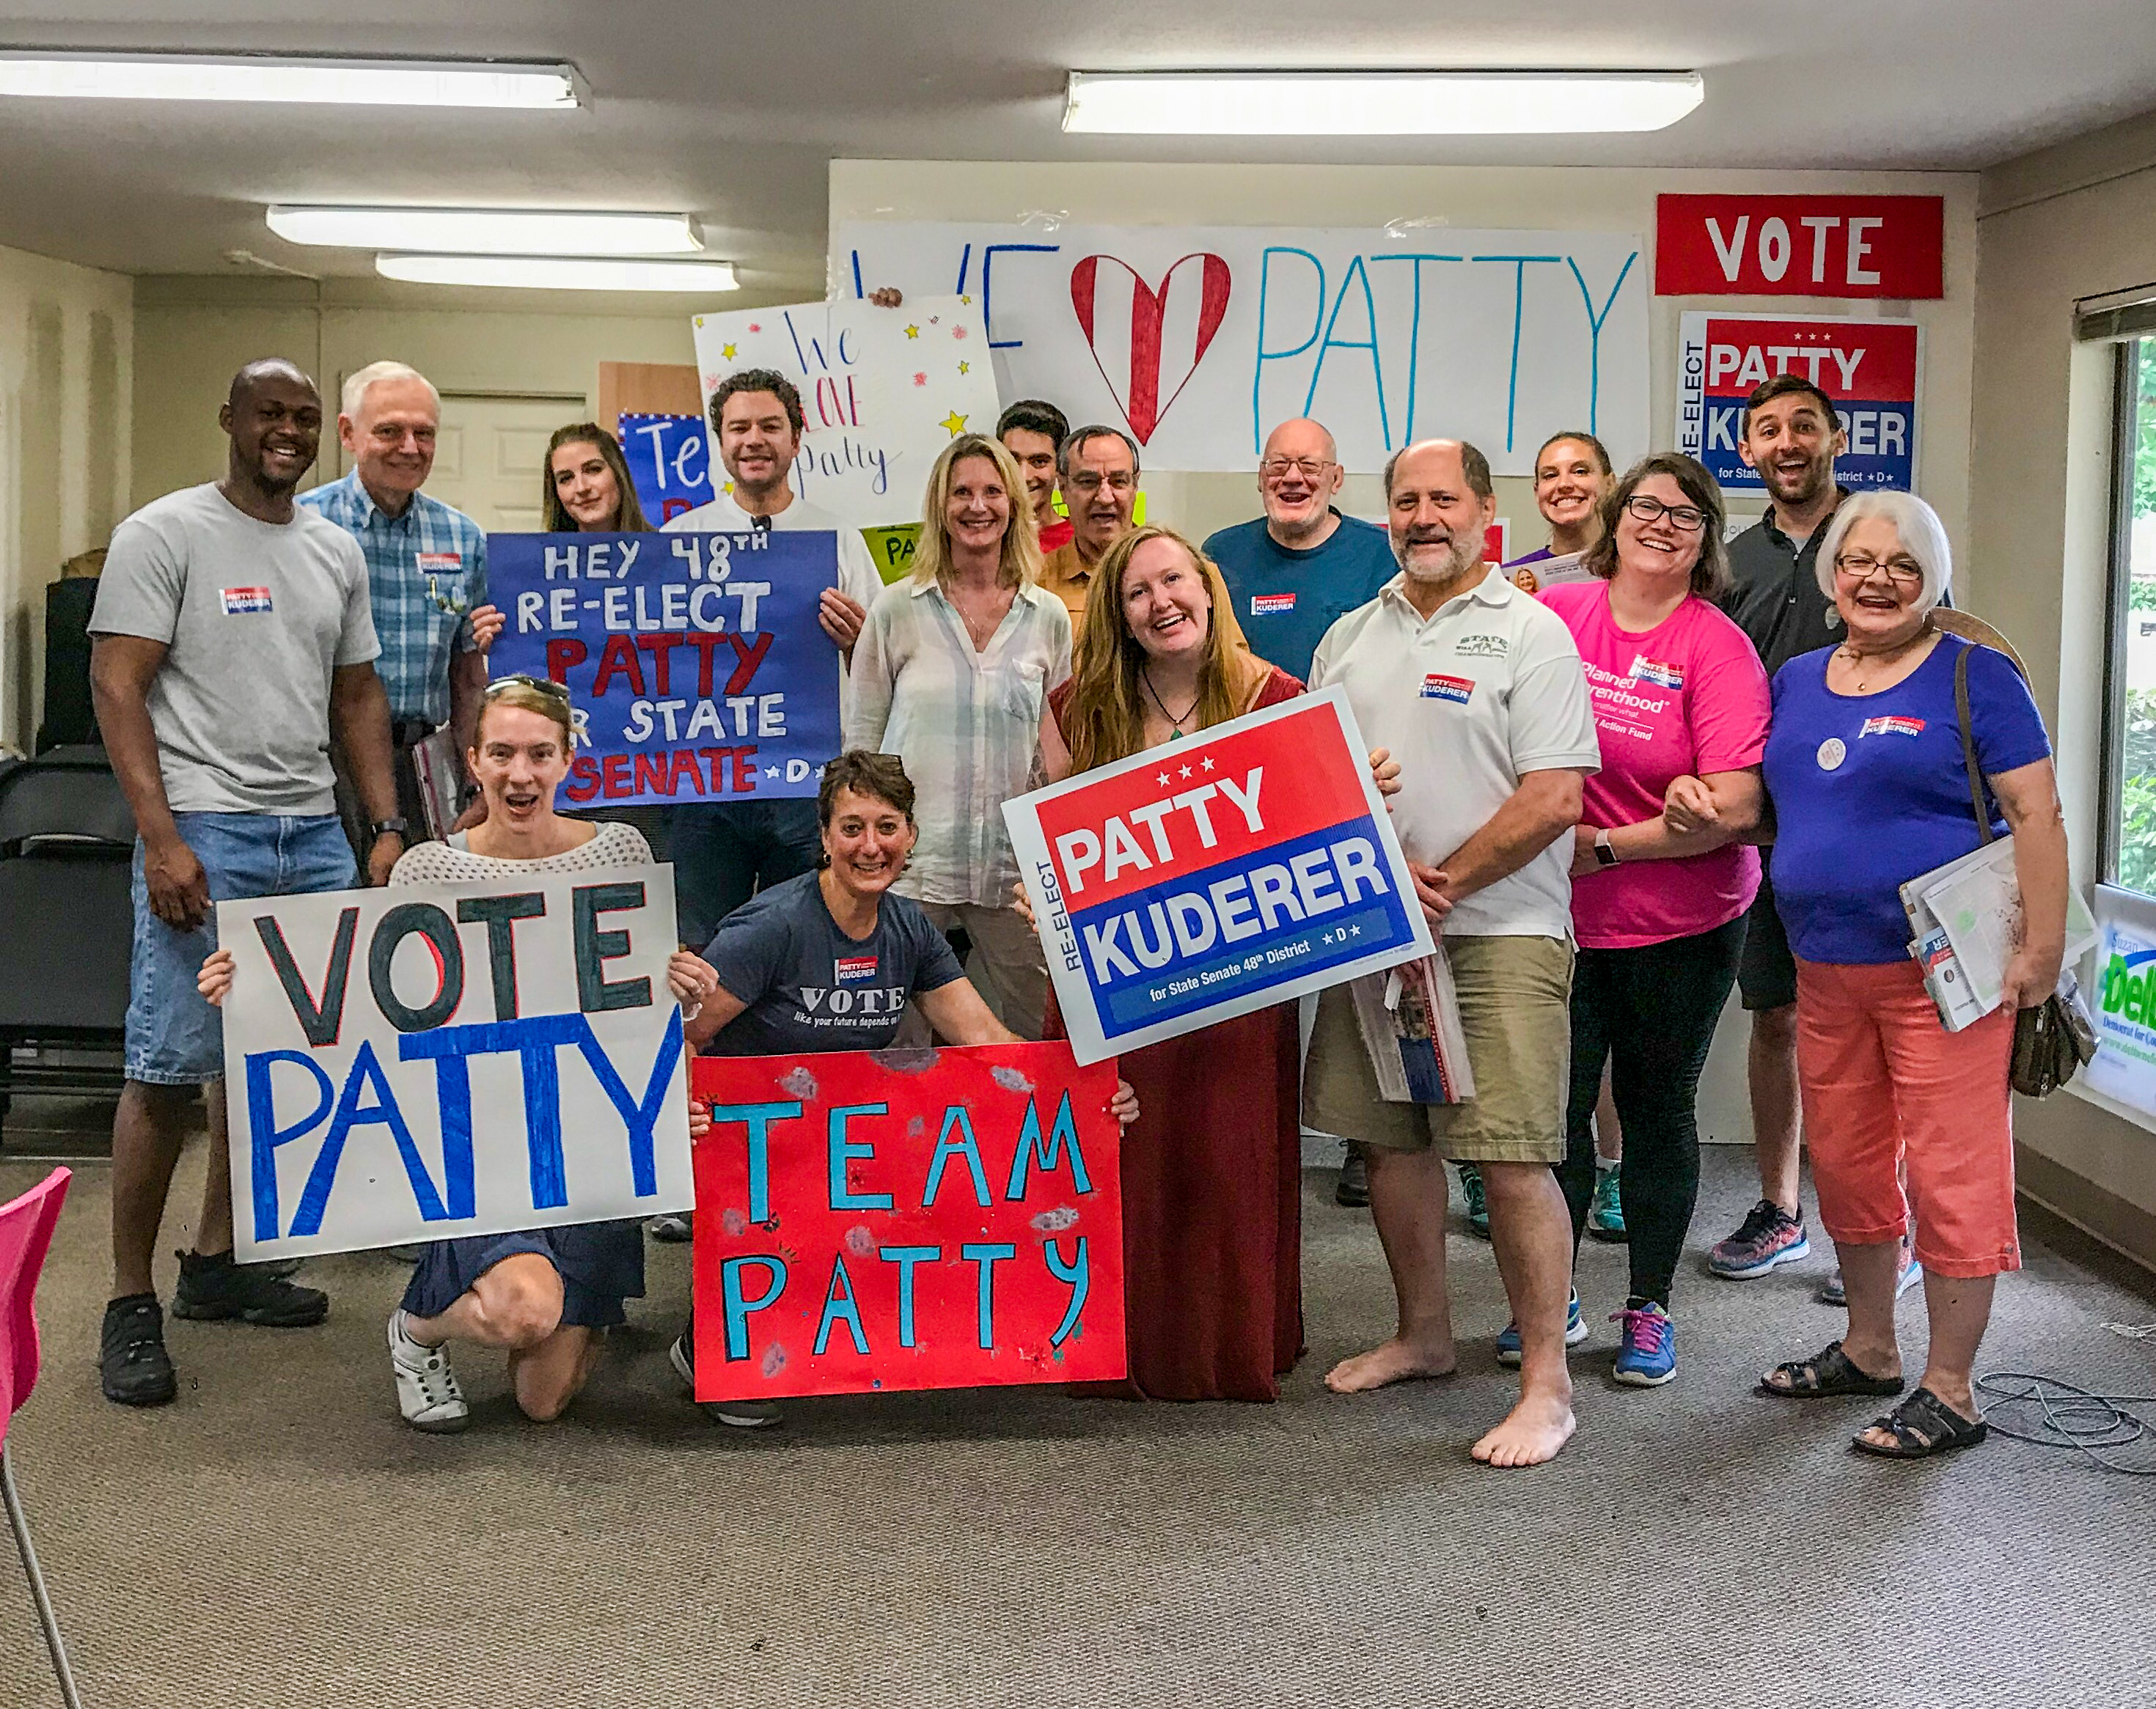 Fuse staff, board members, and volunteers canvassing for Sen. Patty Kuderer